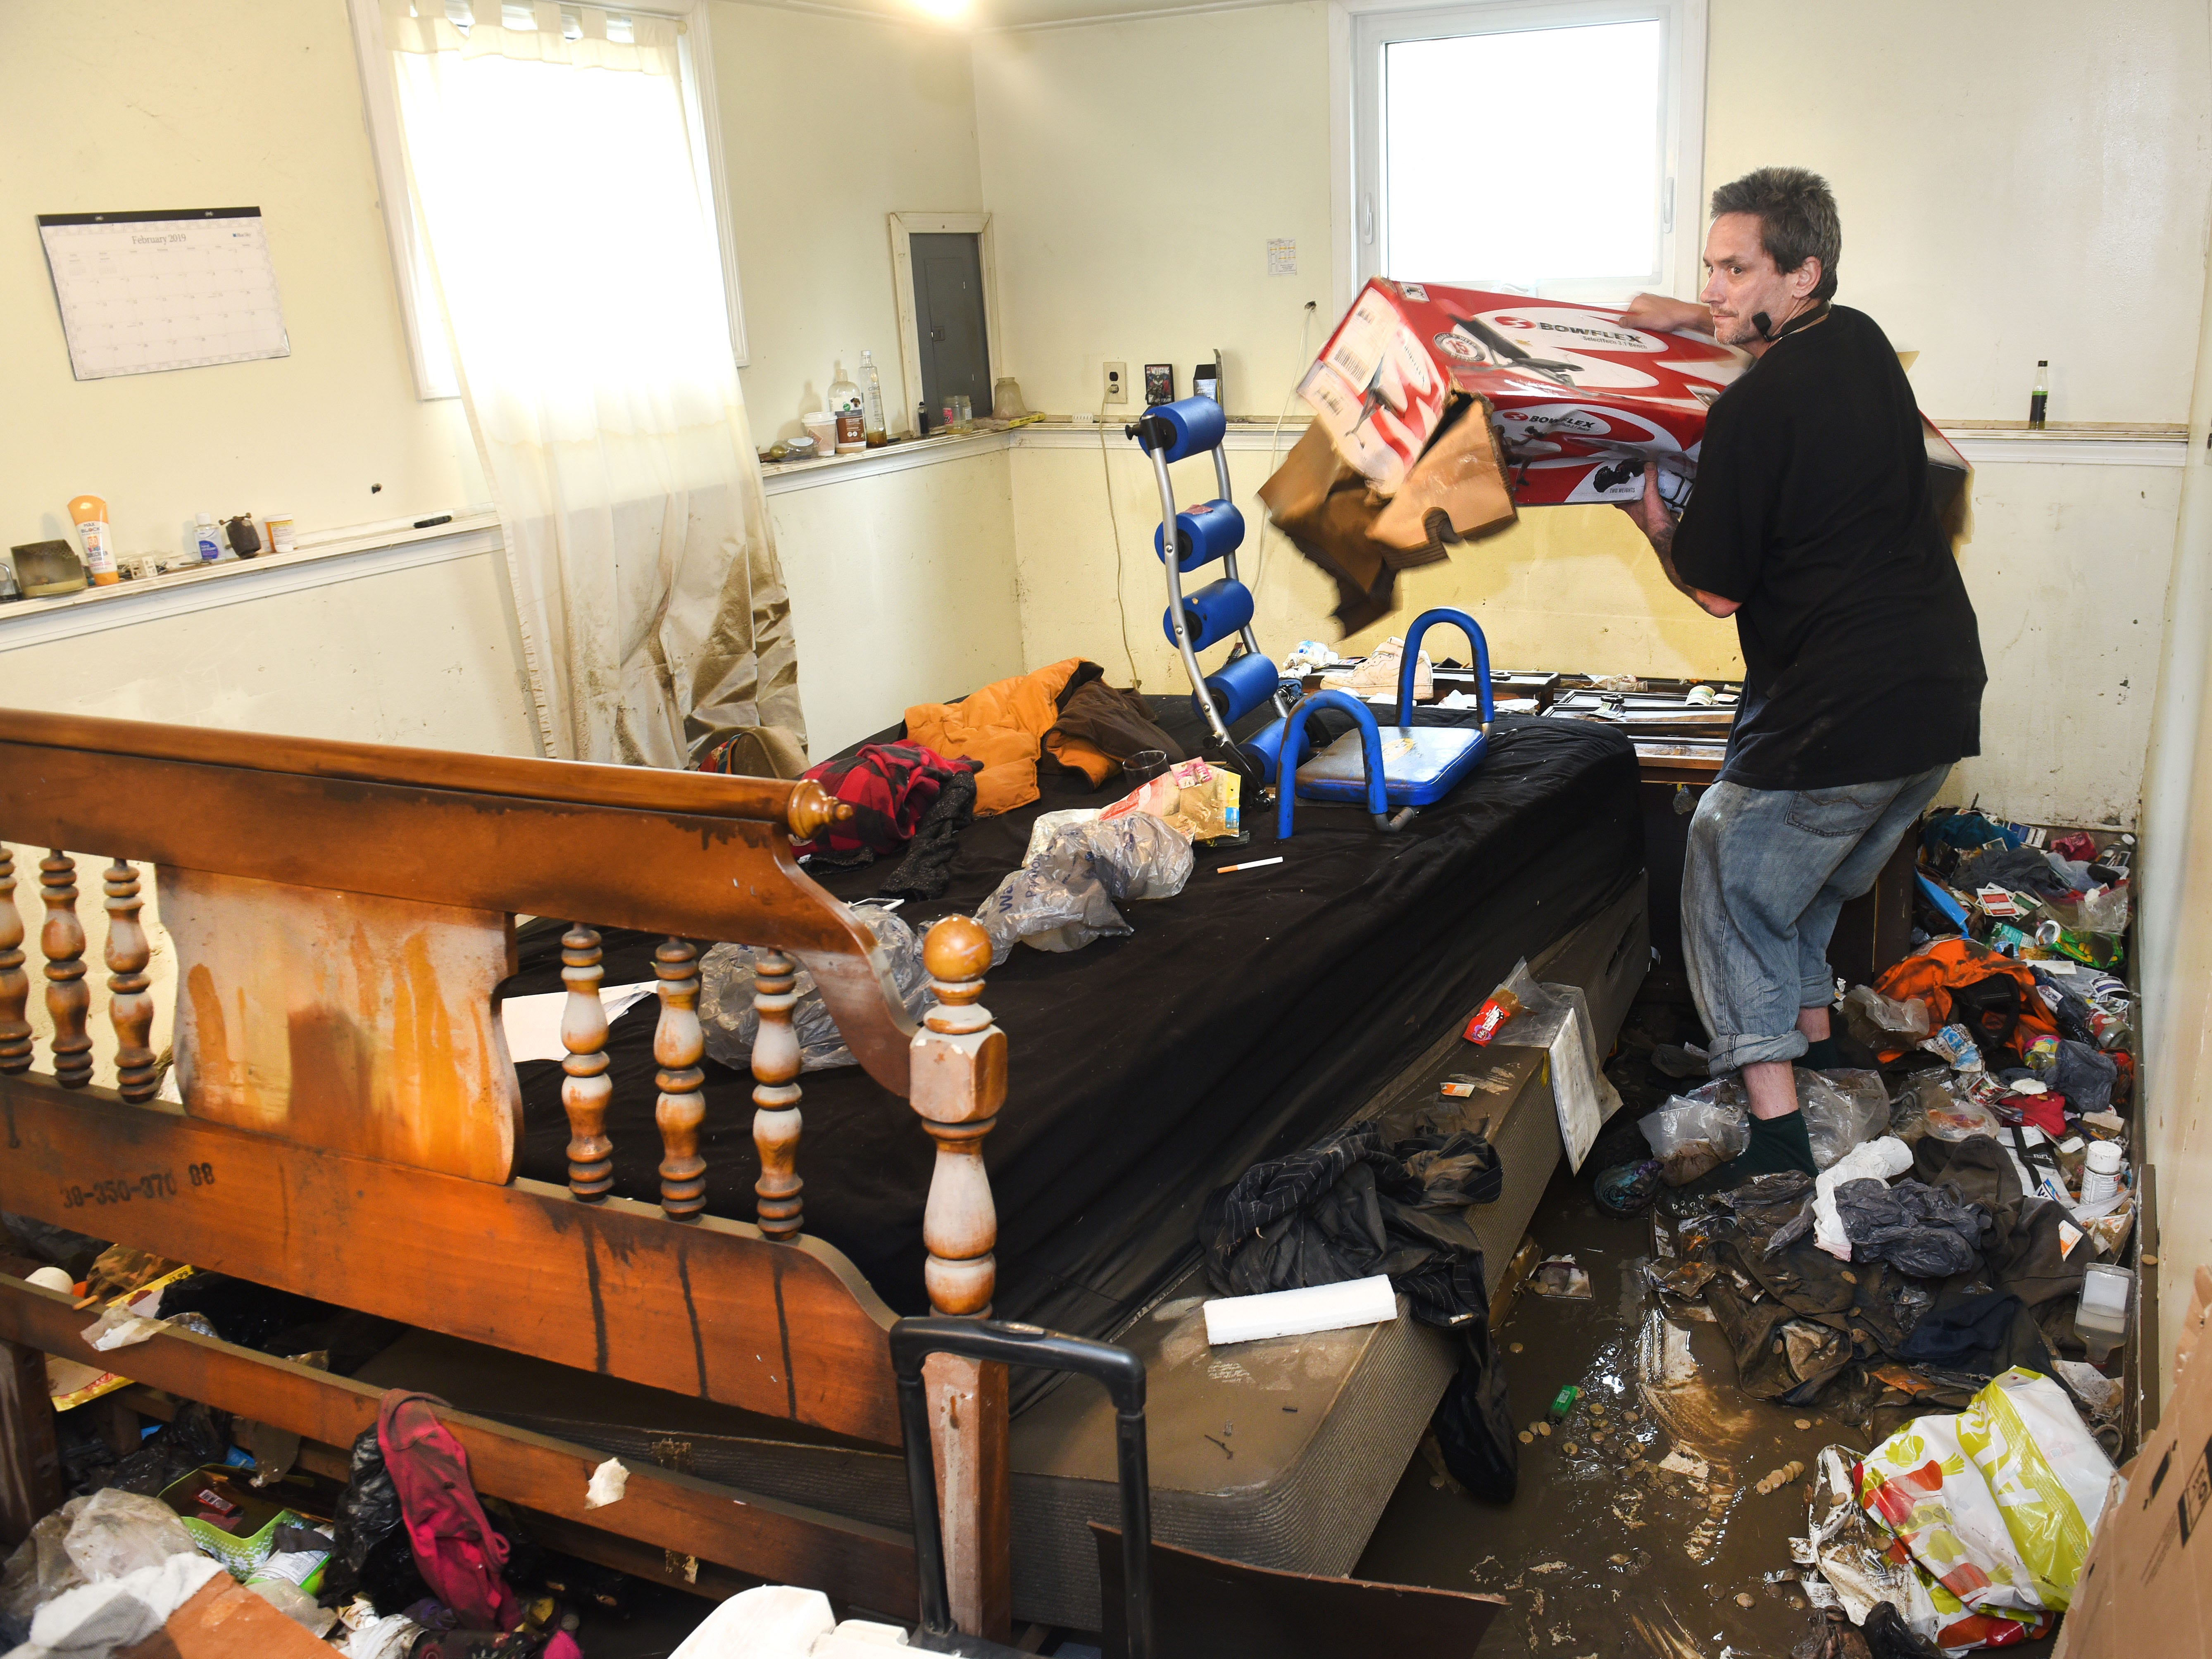 Jesse Sorrell of Dearborn Heights tosses items while cleaning out a bedroom in his flood-damaged basement.